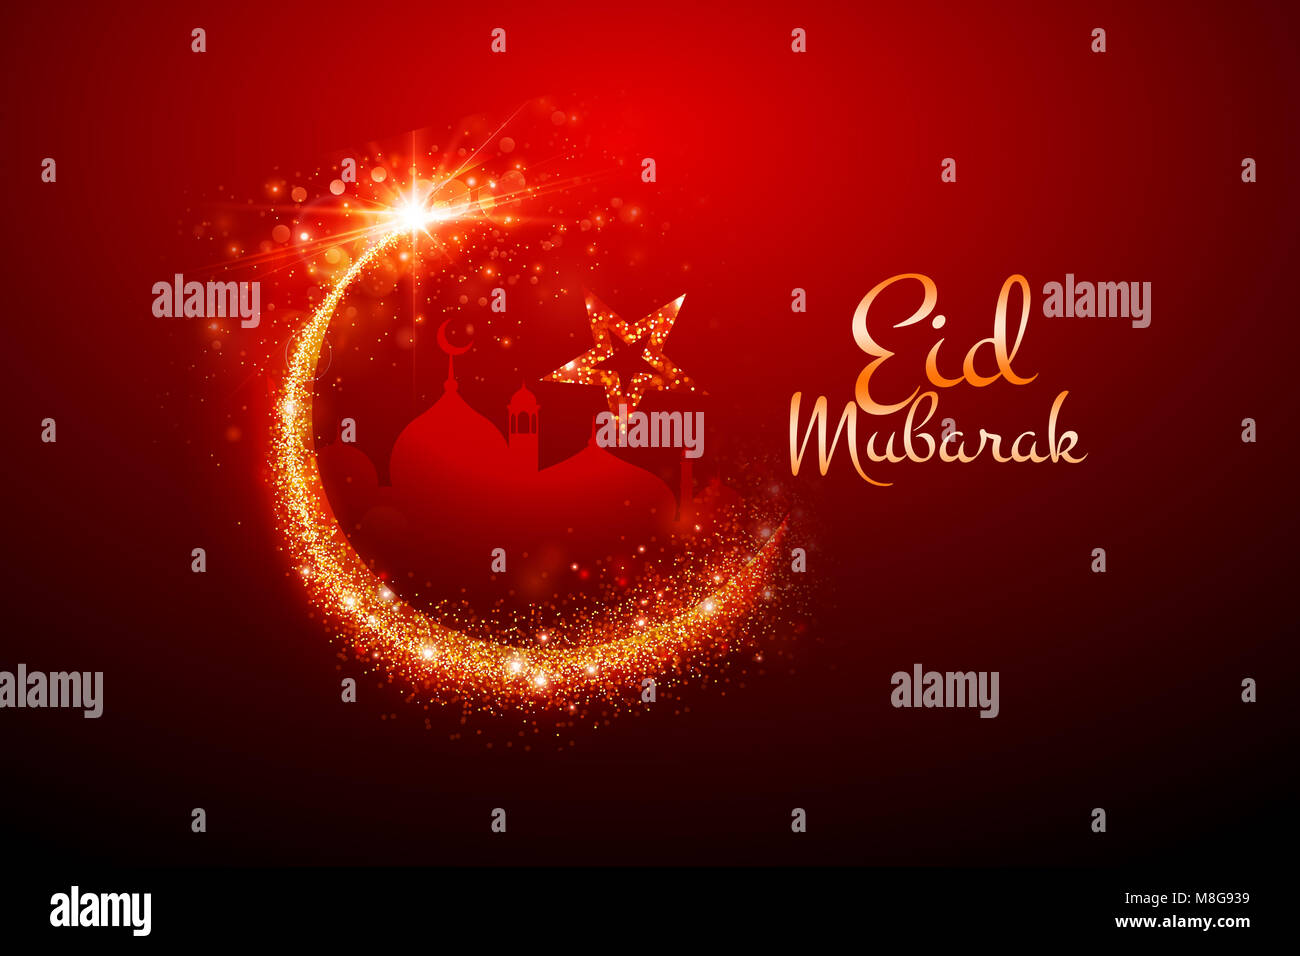 Eid Greetings Stock Photos Eid Greetings Stock Images Alamy